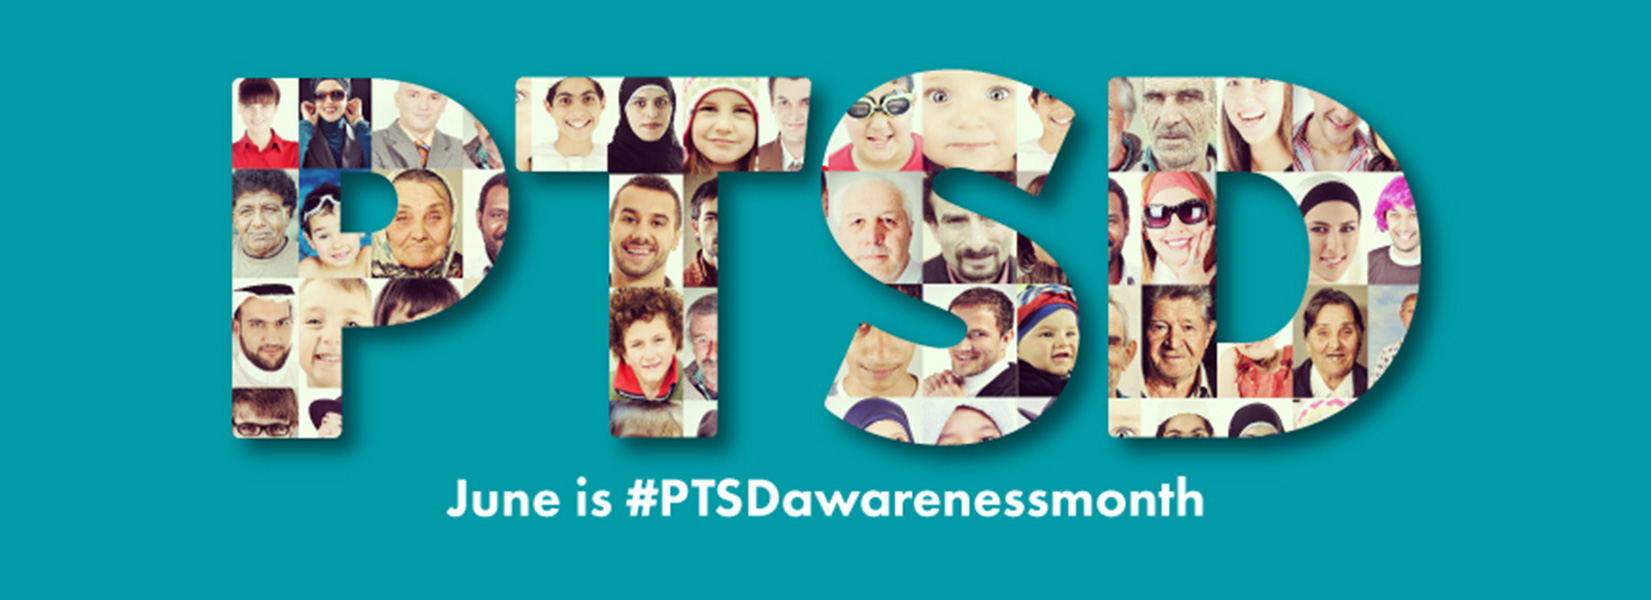 PTSD Awareness Month - June 2017